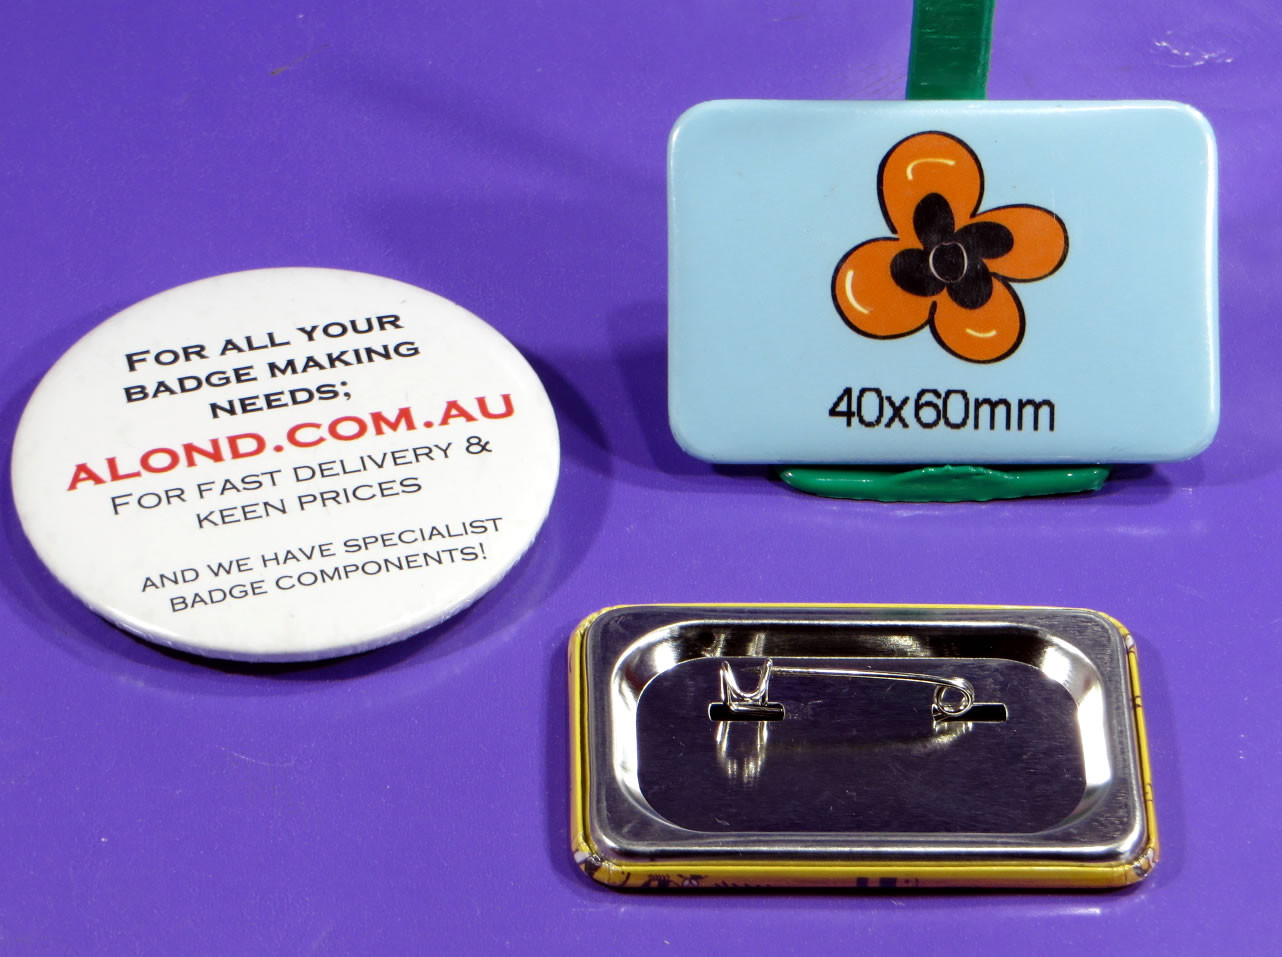 40 x 60 pin-back name badge, makes a great statement